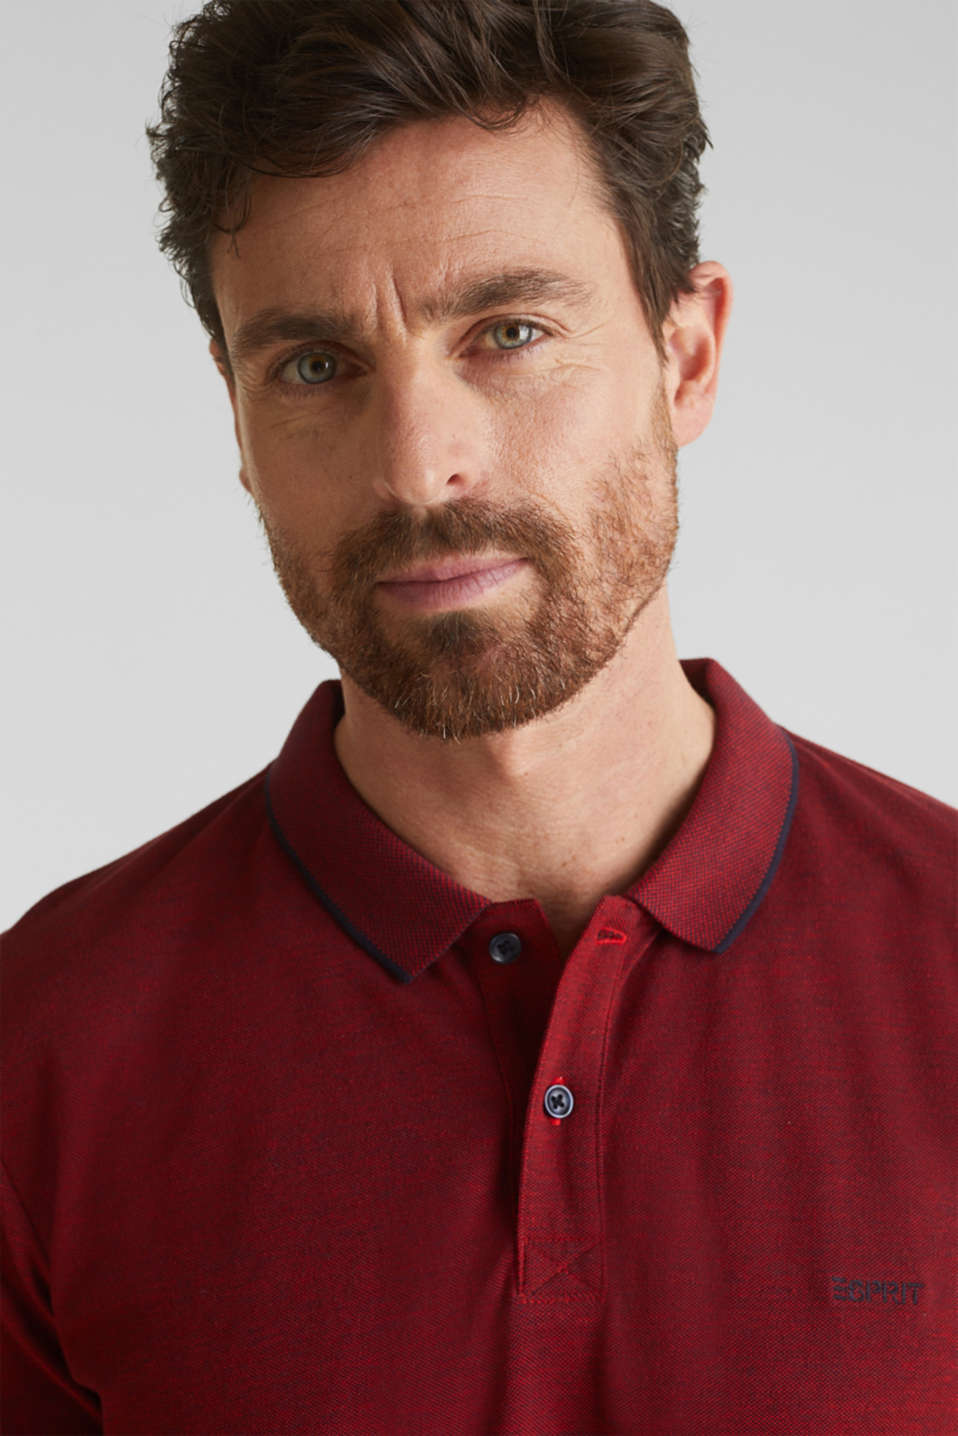 Piqué polo shirt made of 100% organic cotton, RED, detail image number 1